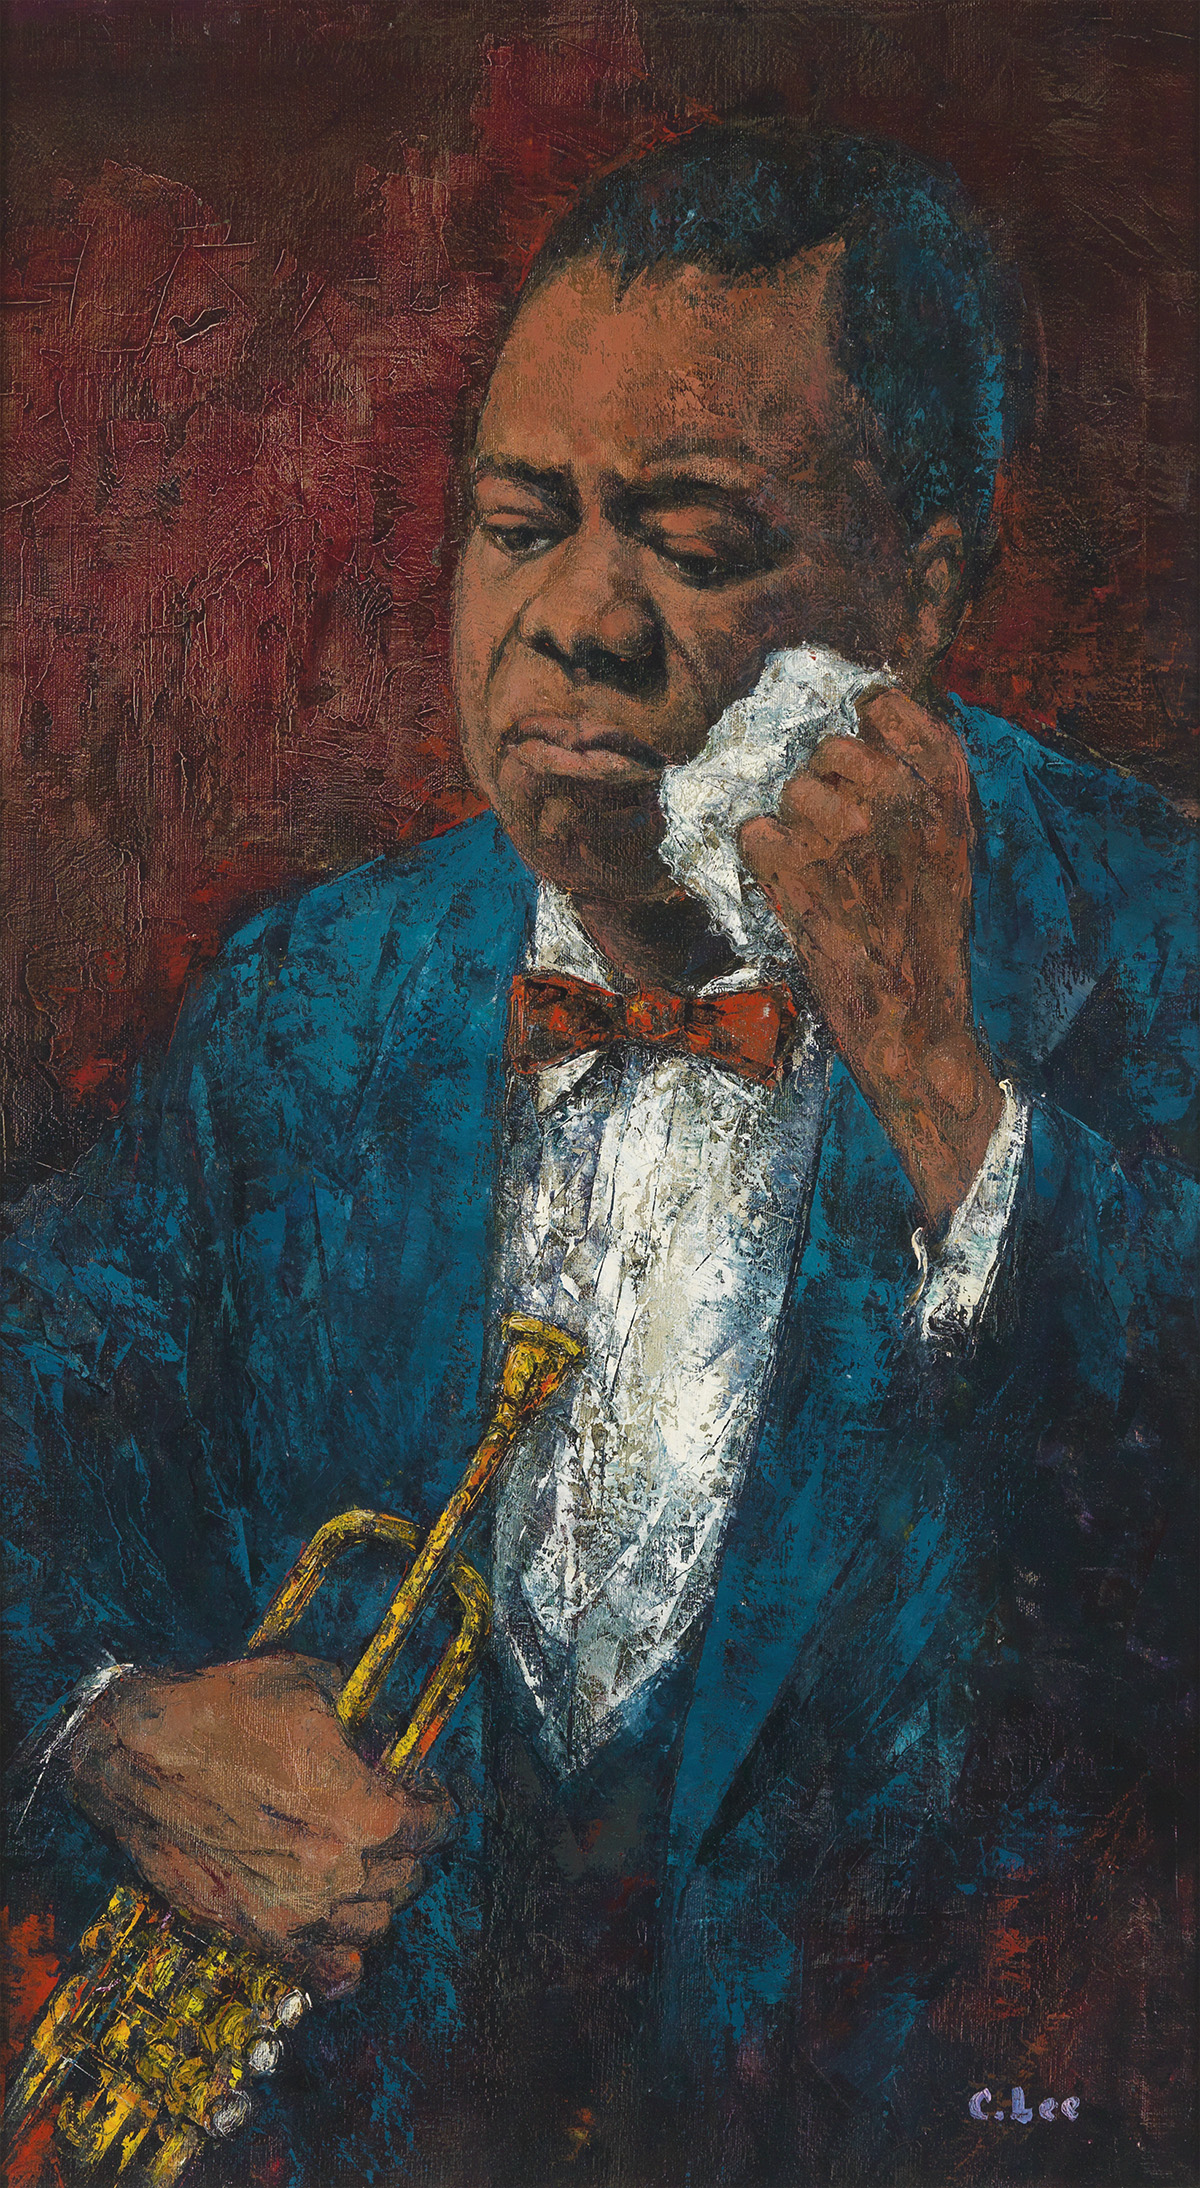 CLIFFORD L. LEE (1926 - 1985) Louis Armstrong.